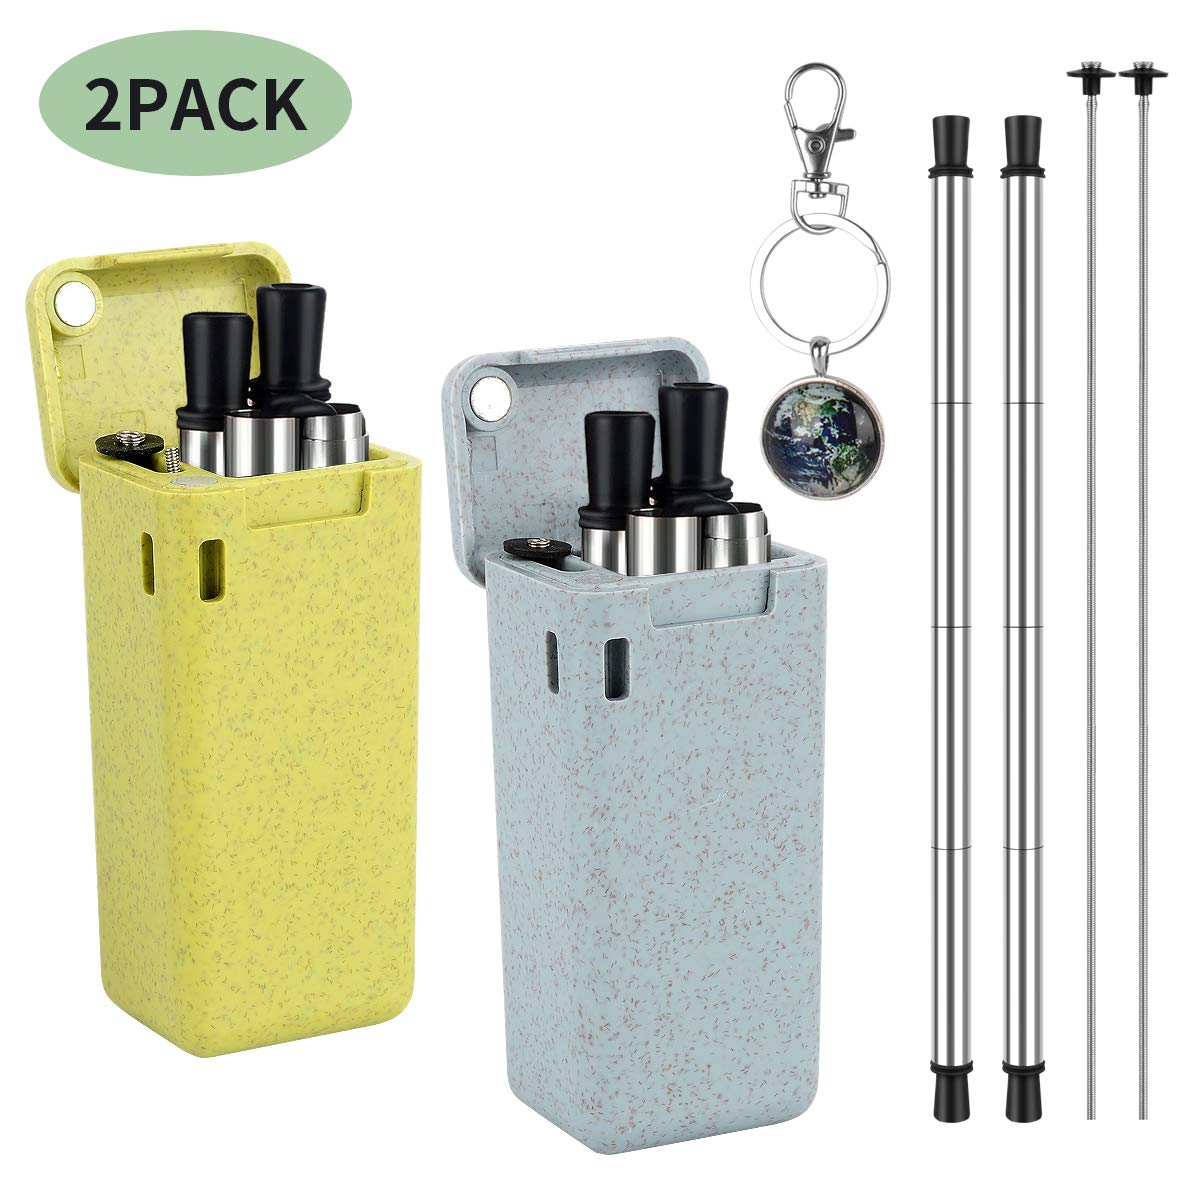 2 Pack Collapsible Reusable Straws, Daletu Stainless Steel Silicone Metal Drinking Straw, Portable Folding Straws with Hard Case and Cleaning Brush Keychain